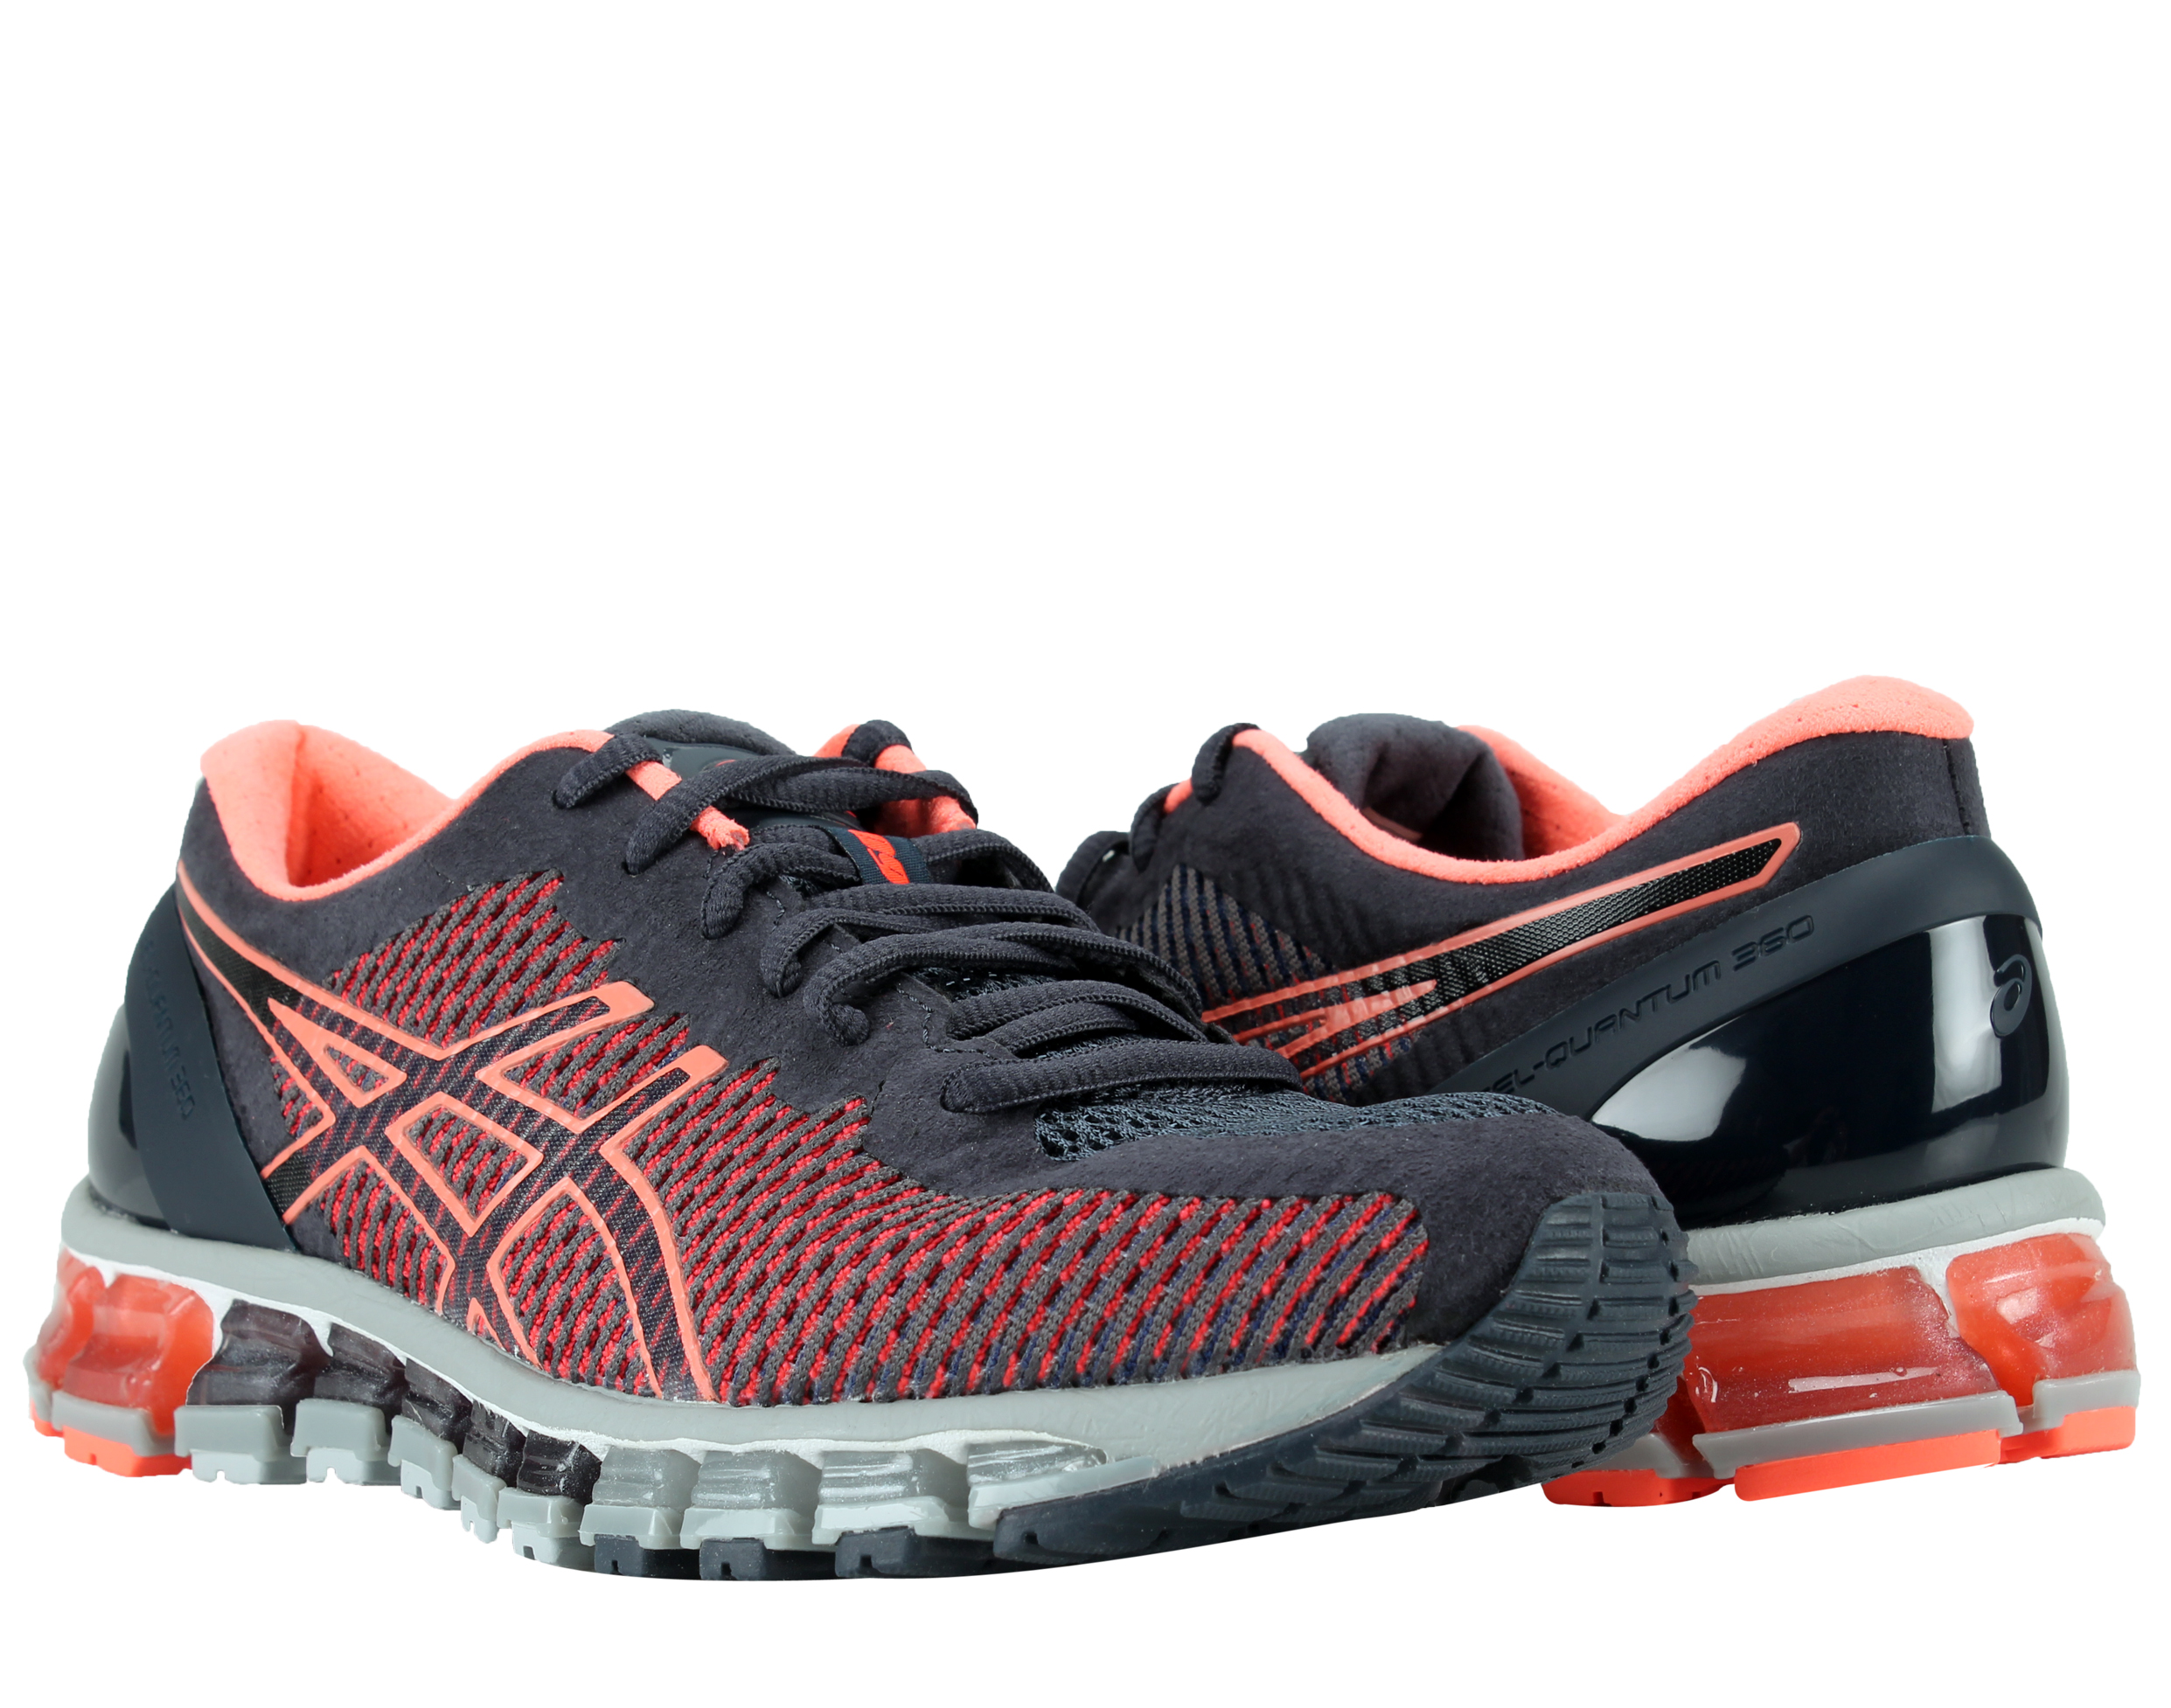 Asics Gel-Quantum 360 CM India Ink Coral Grey Women's Running Shoes T6G6N-5806 by Asics